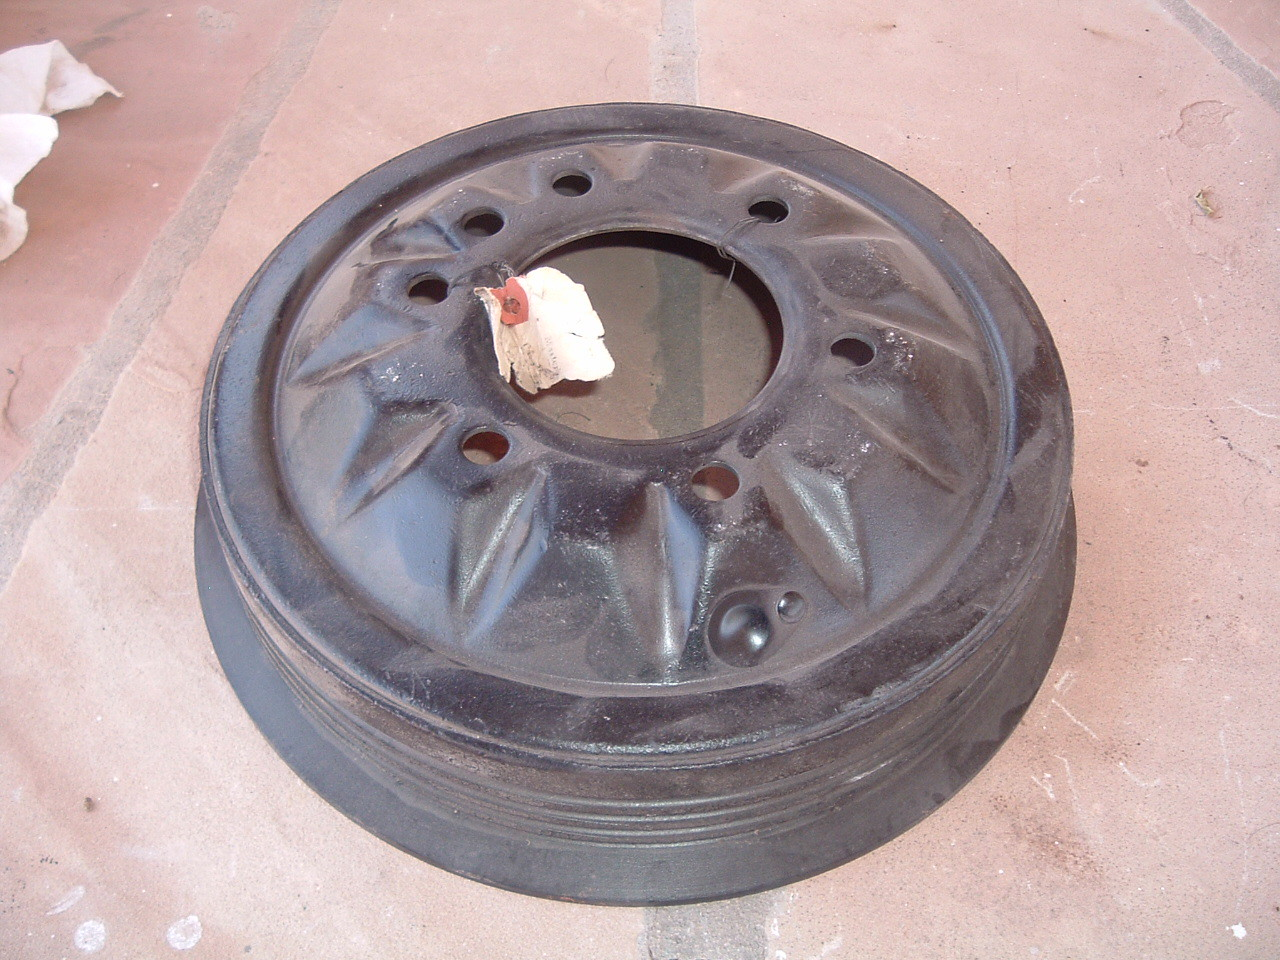 1936 38 40 41 42 46 47 48 49 50 chevrolet pass / truck front / rear brake drum nos gm 601985 (z 601985)